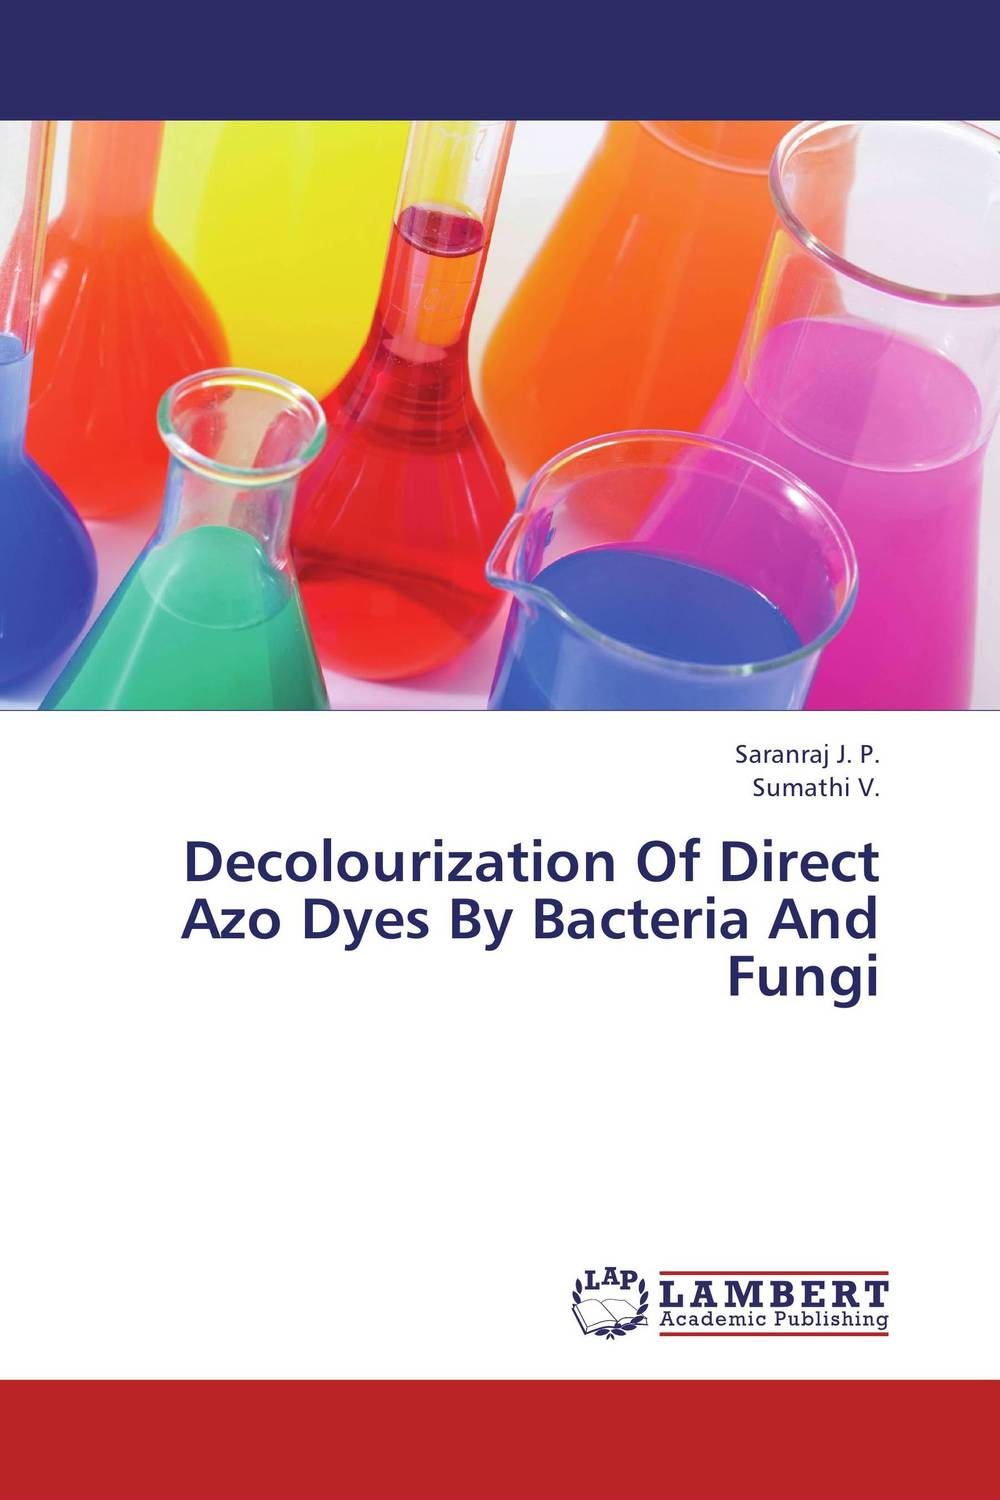 Decolourization Of Direct Azo Dyes By Bacteria And Fungi augmented cellulase production by mutagenesis of trichoderma viride